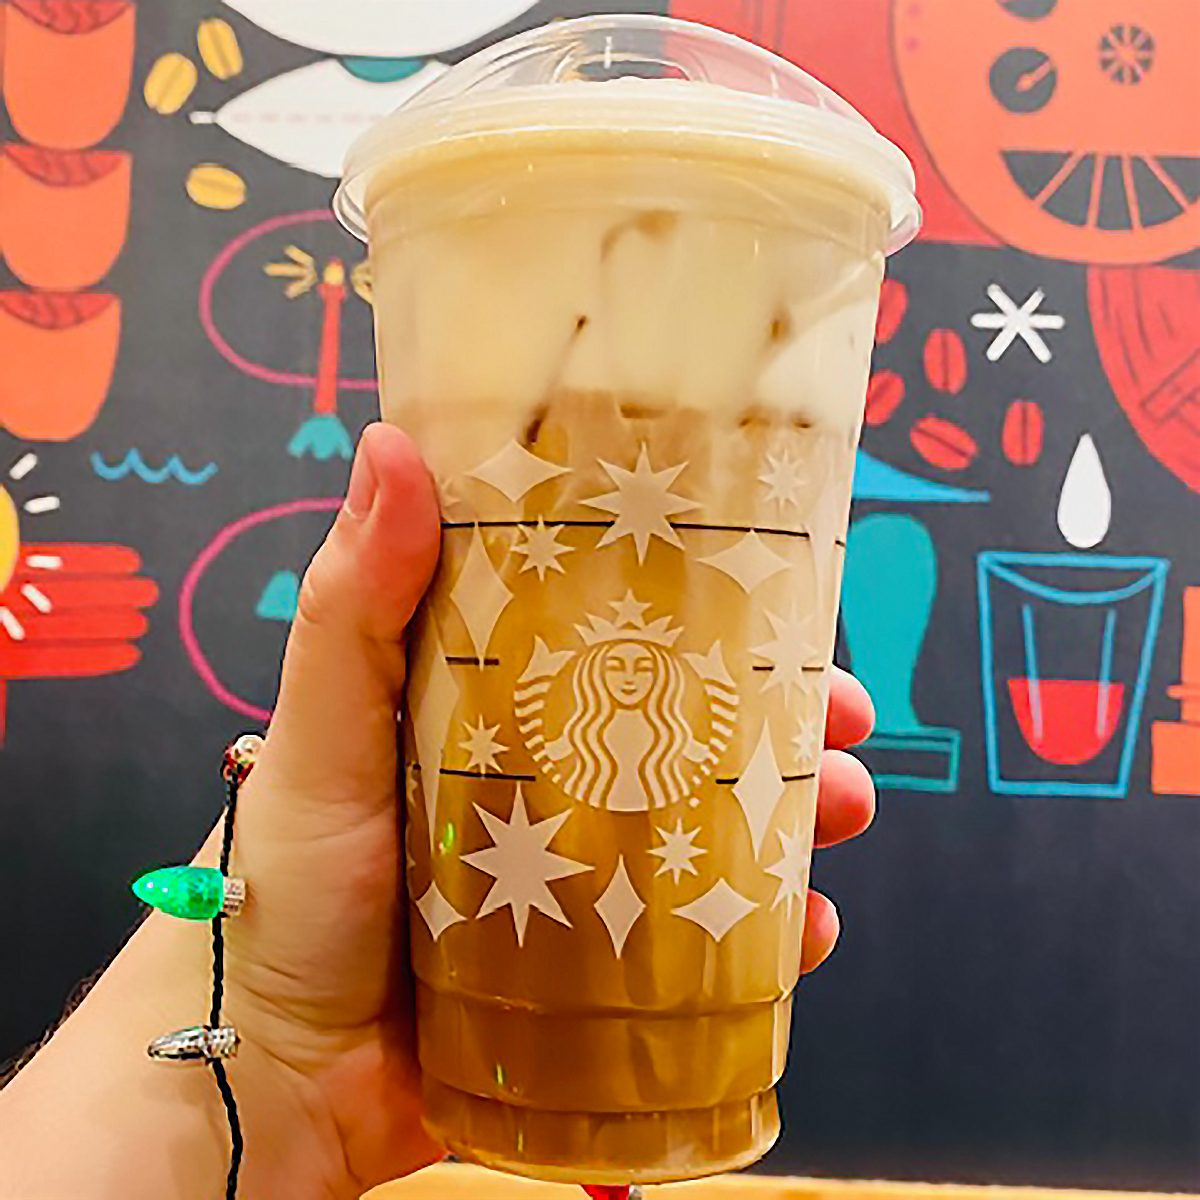 TOASTED CARAMEL BRÛLÉE COLD BREW FROM STARBUCKS